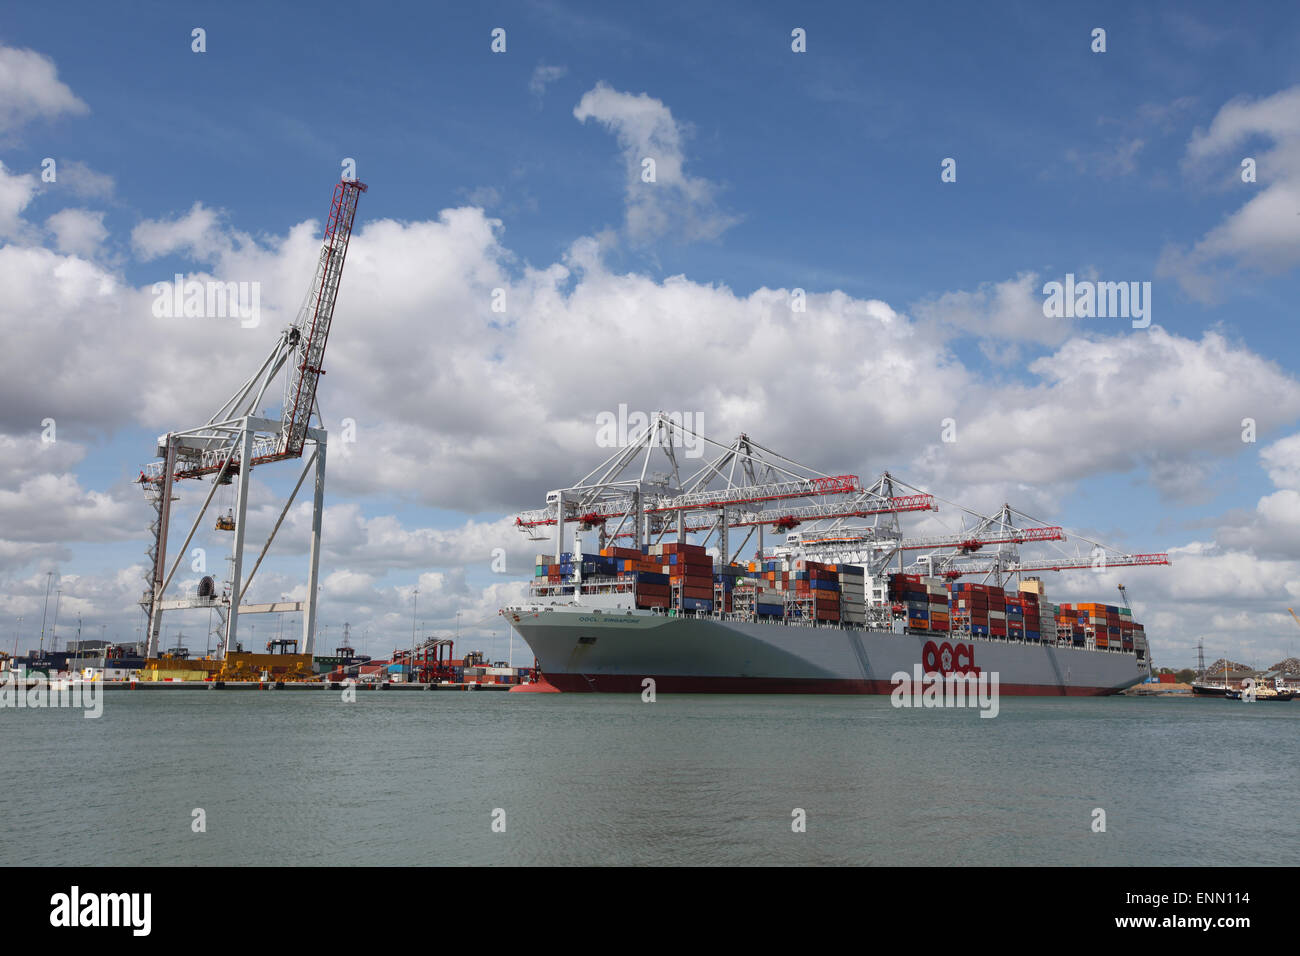 Container ship OOCL Singapore pictured in Southampton Docks Container Port - Stock Image